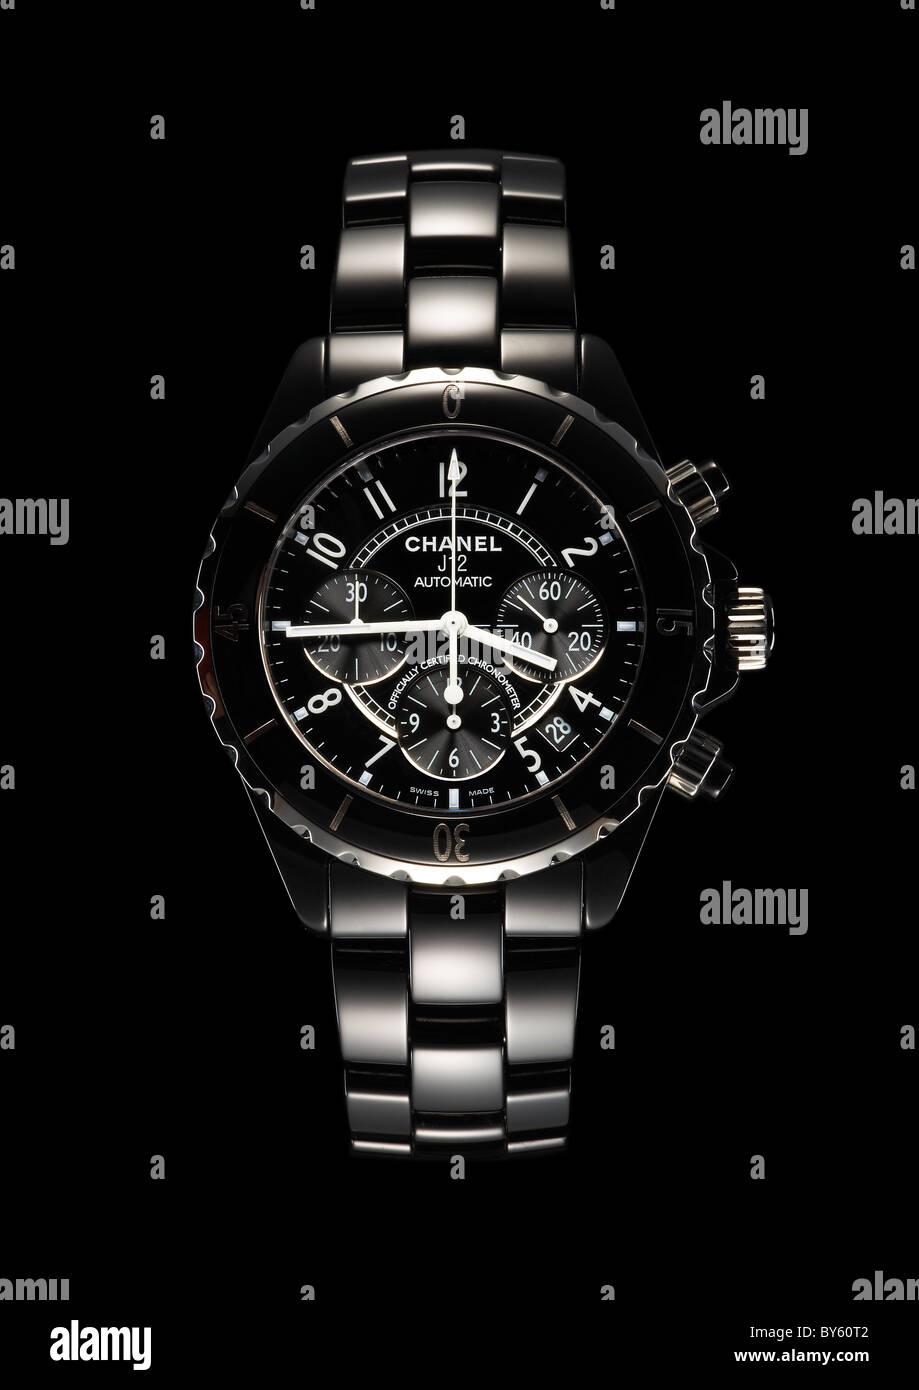 Chanel designer watch time piece - Stock Image